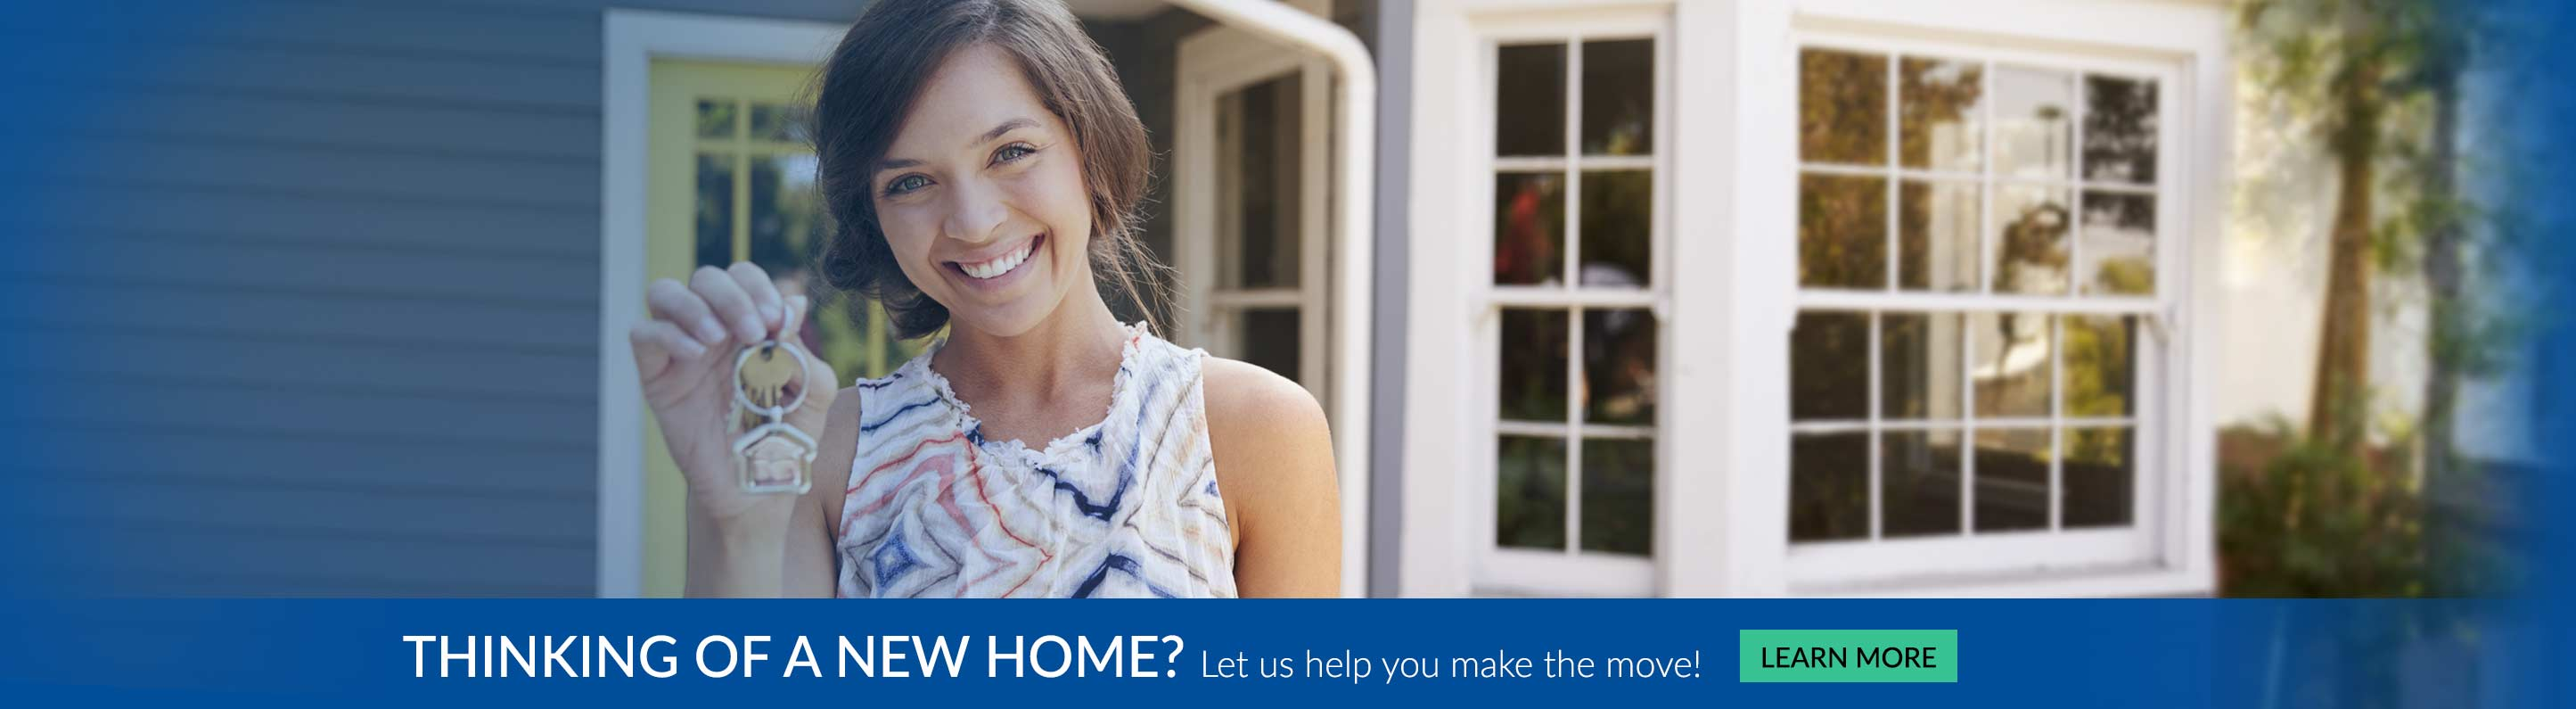 Thinking of a new home? Let us help you make the move. - Learn More